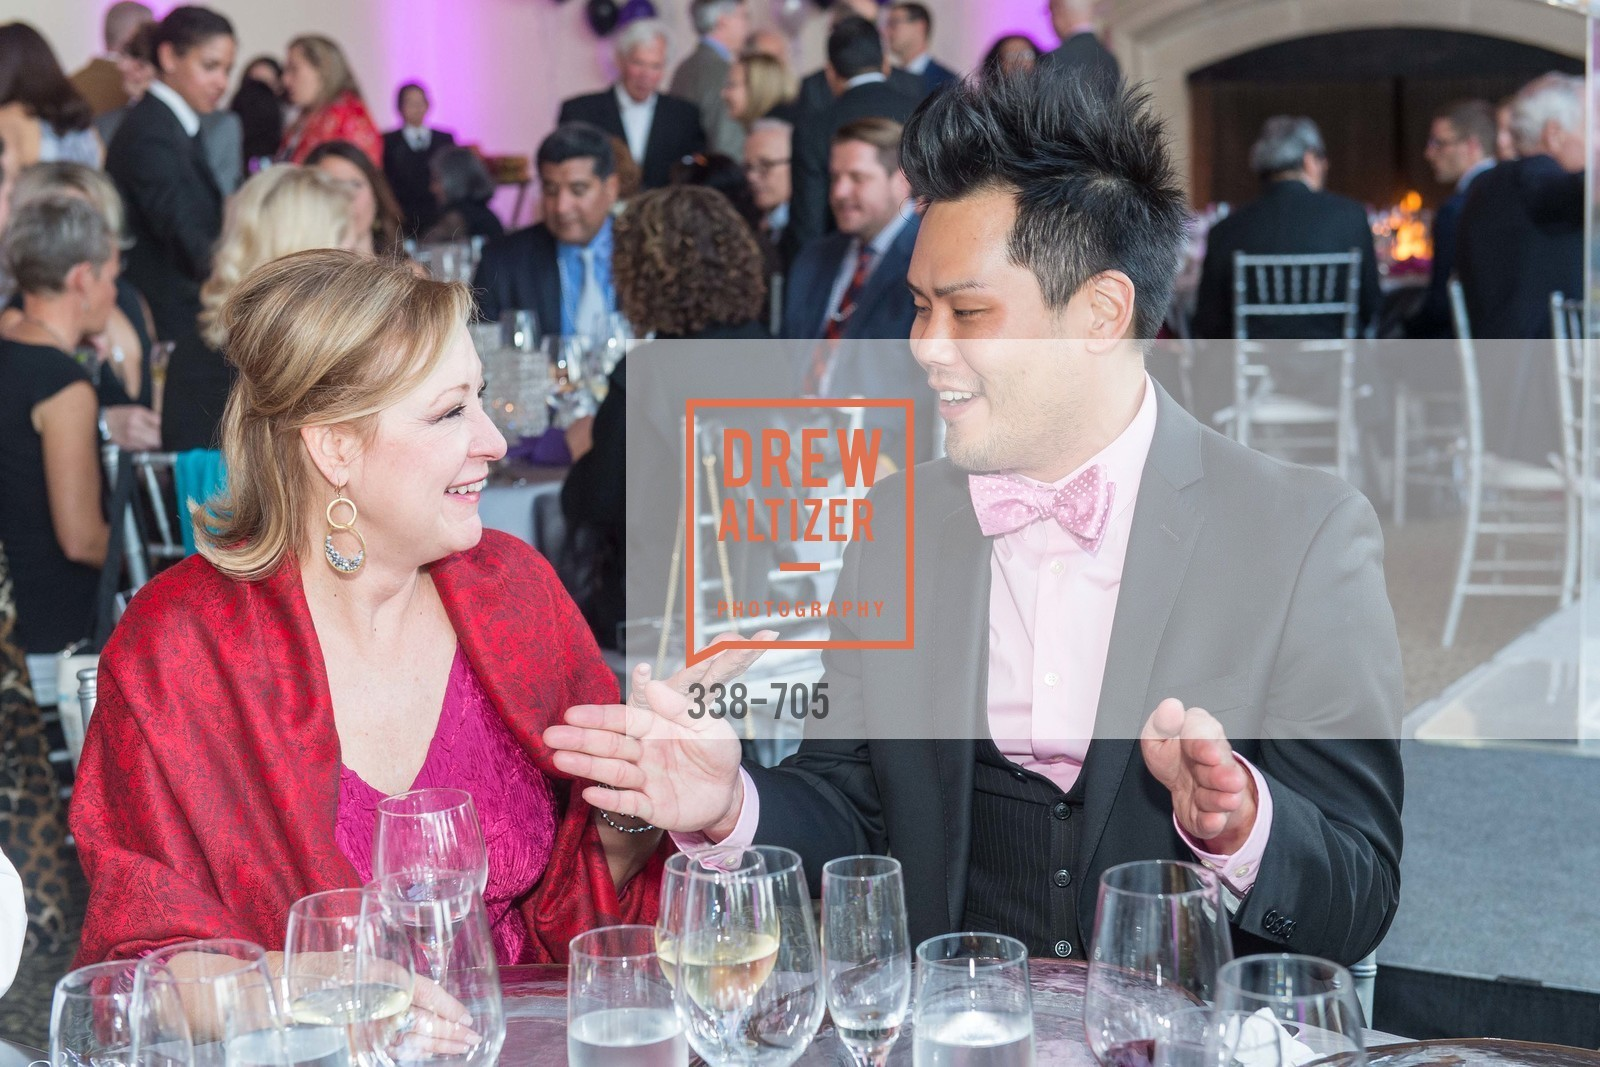 Susan Thompson, Christopher Lee, MAGIC THEATRE'S 2015 Gala:  A Night of Magic, US, May 8th, 2015,Drew Altizer, Drew Altizer Photography, full-service agency, private events, San Francisco photographer, photographer california